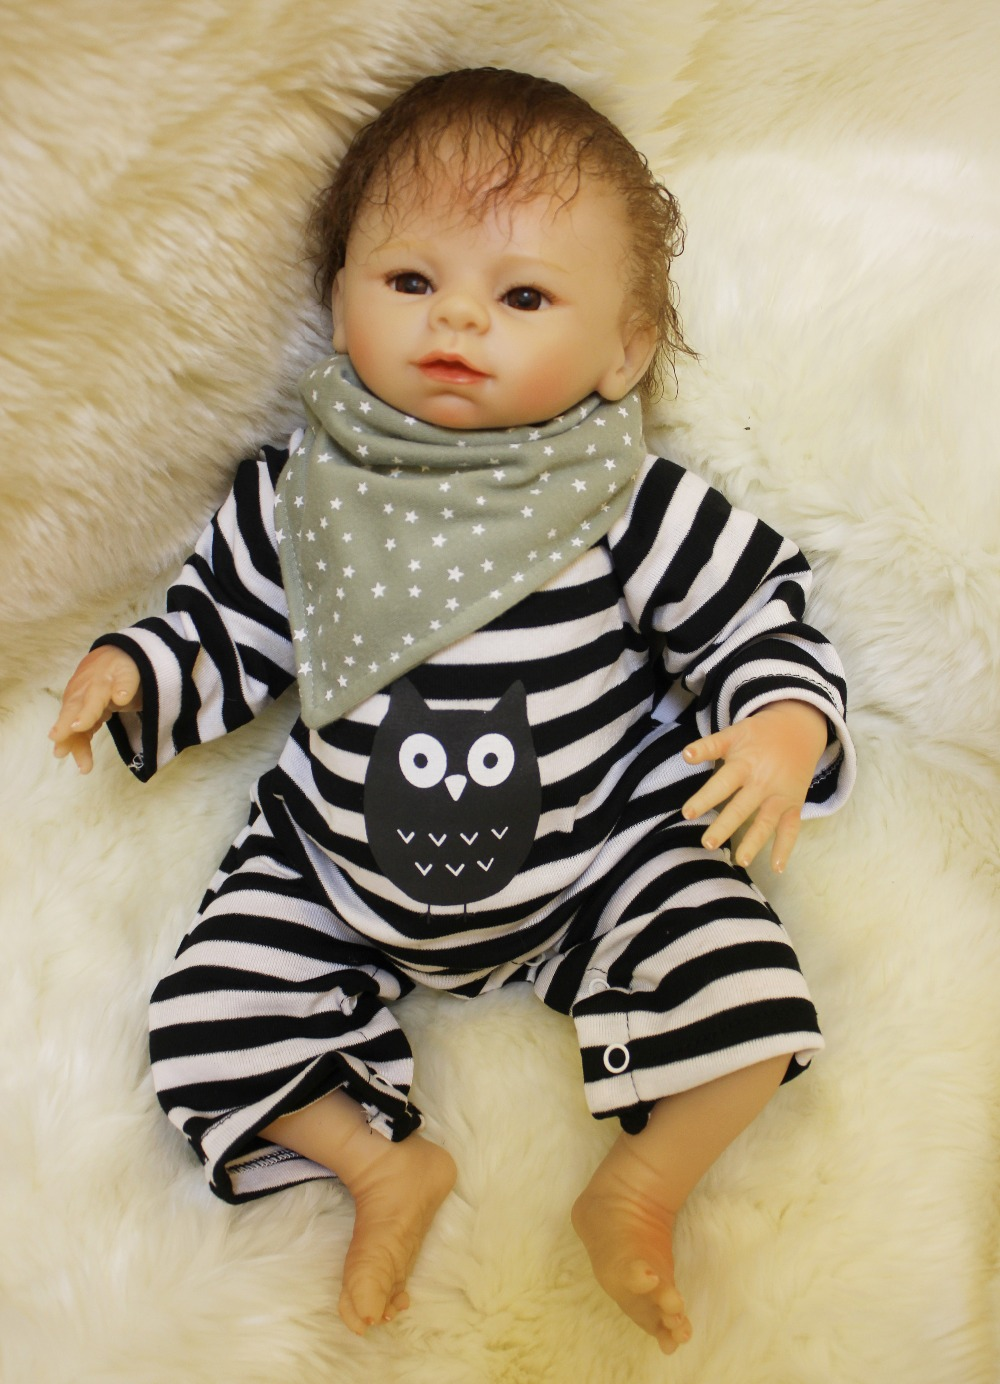 Reborn baby dolls for sale Soft Vinyl Silicone Lifelike Newborn Cosplay Brinquedo Boys Girls Early Education Reborn Babies Doll christmas gifts in europe and america early education full body silicone doll reborn babies brinquedo lifelike rb16 11h10